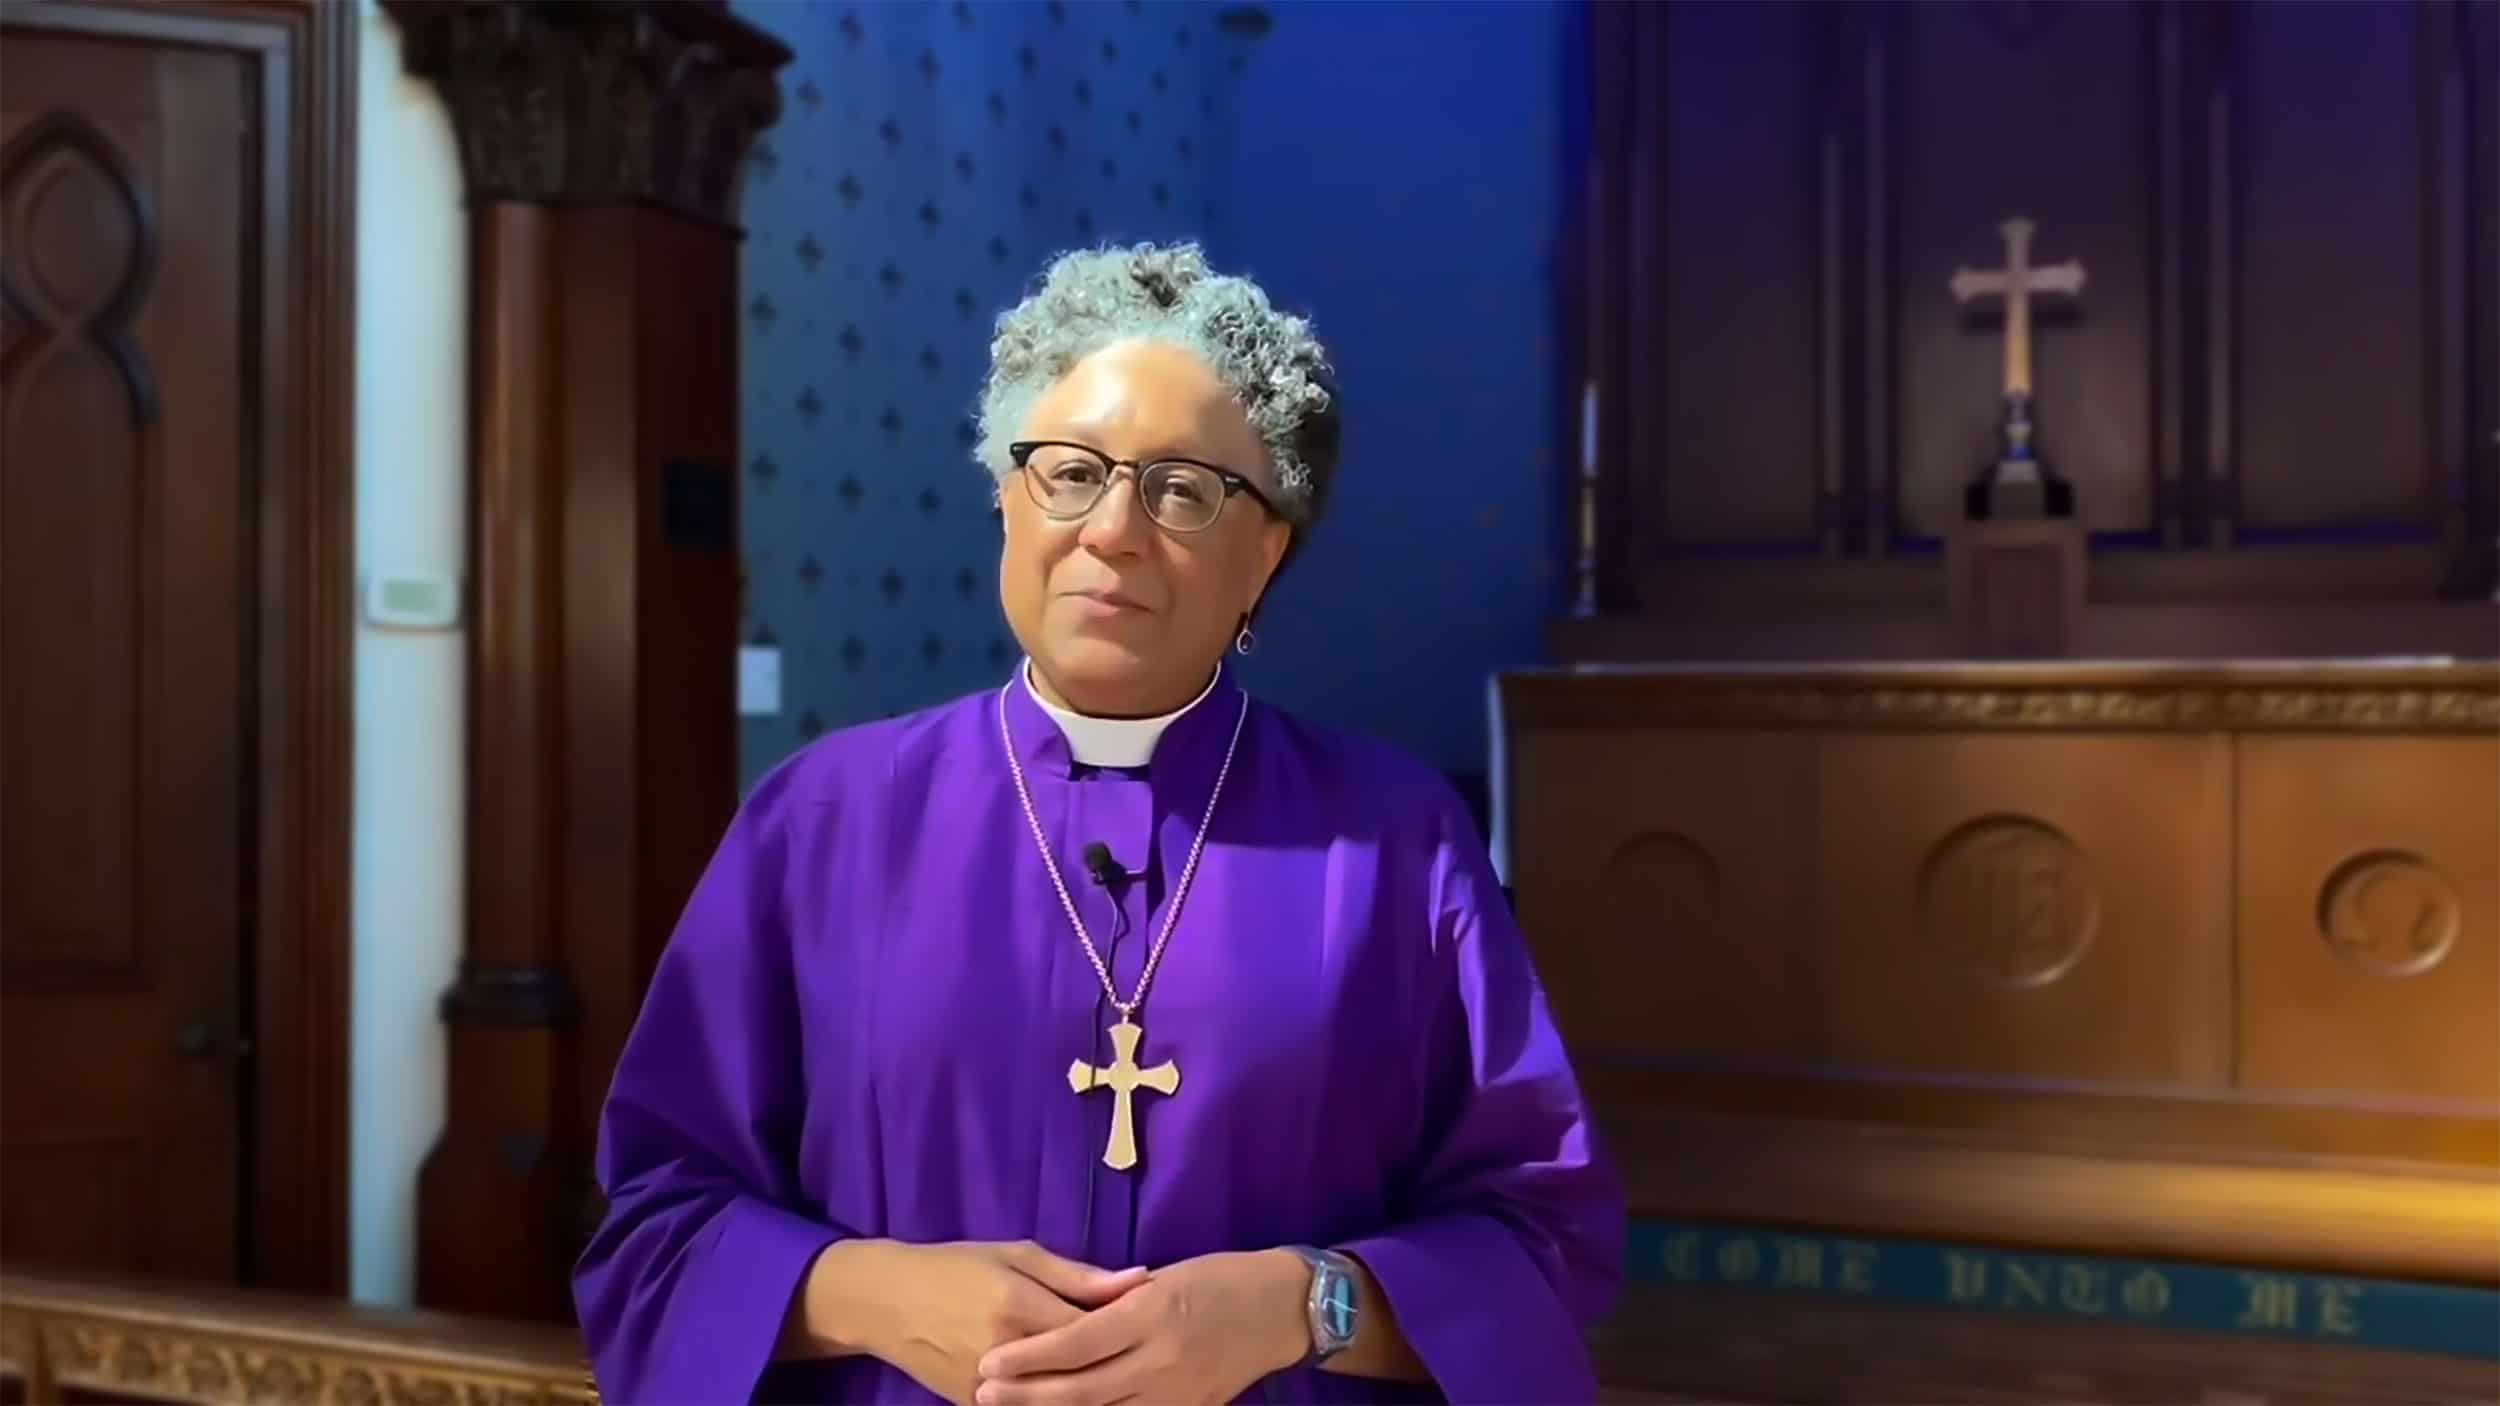 COVID-19 Update from Bishop Phoebe